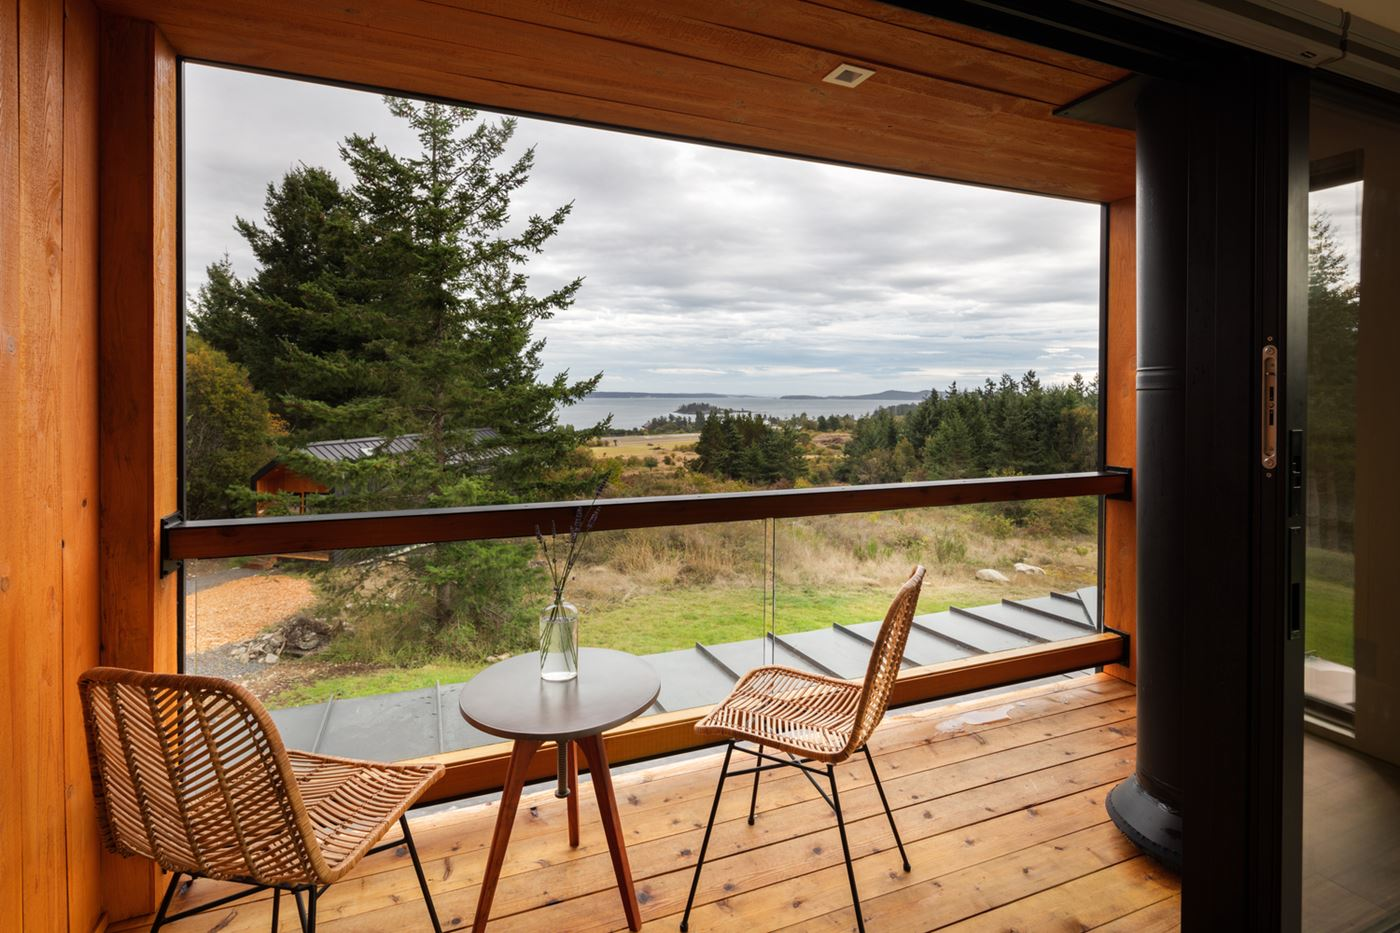 wood porch and chairs, cozy view